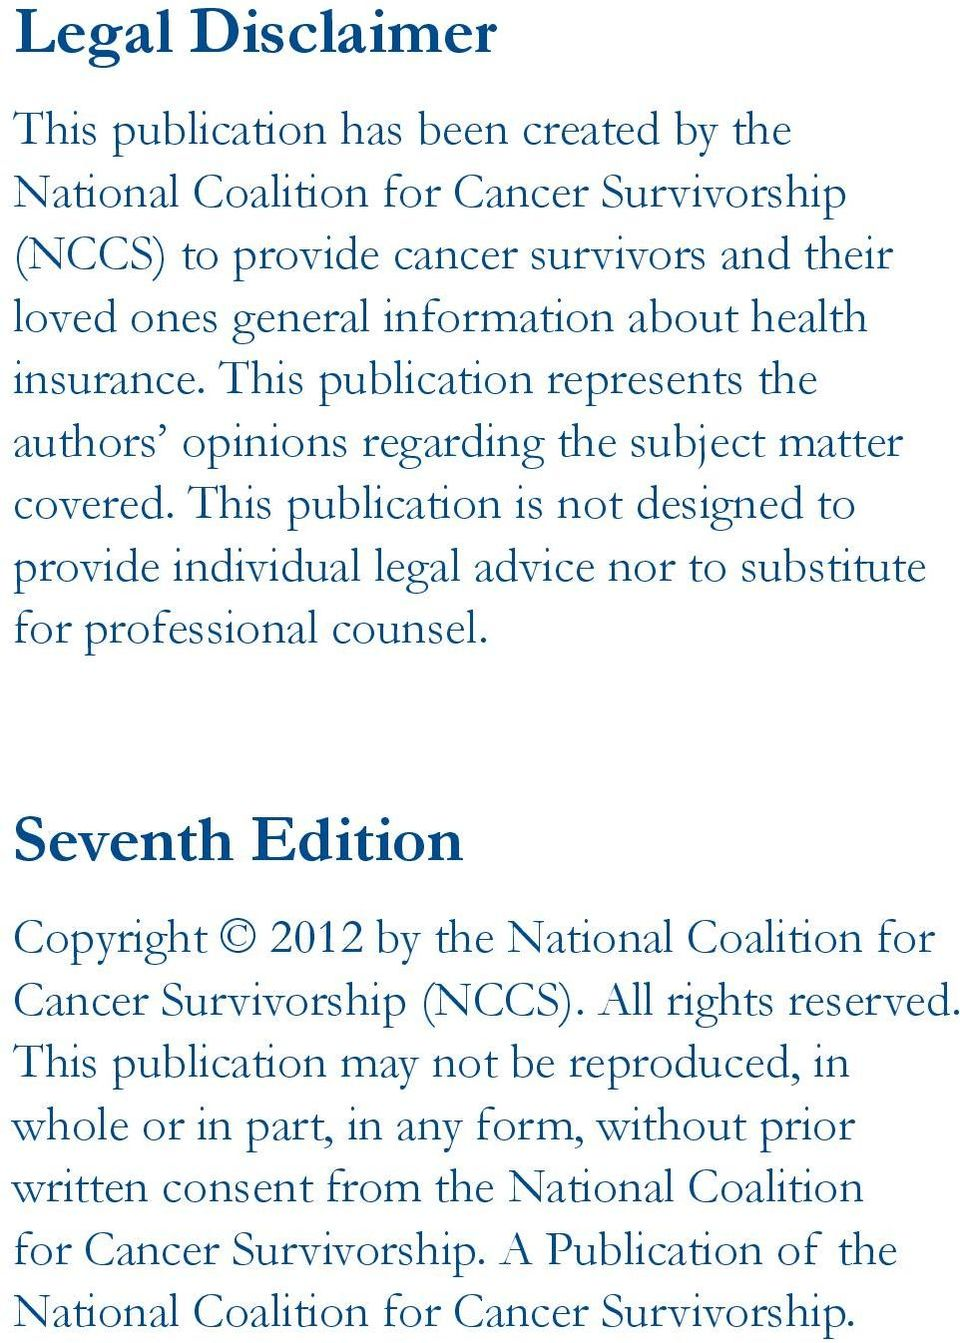 This publication is not designed to provide individual legal advice nor to substitute for professional counsel.